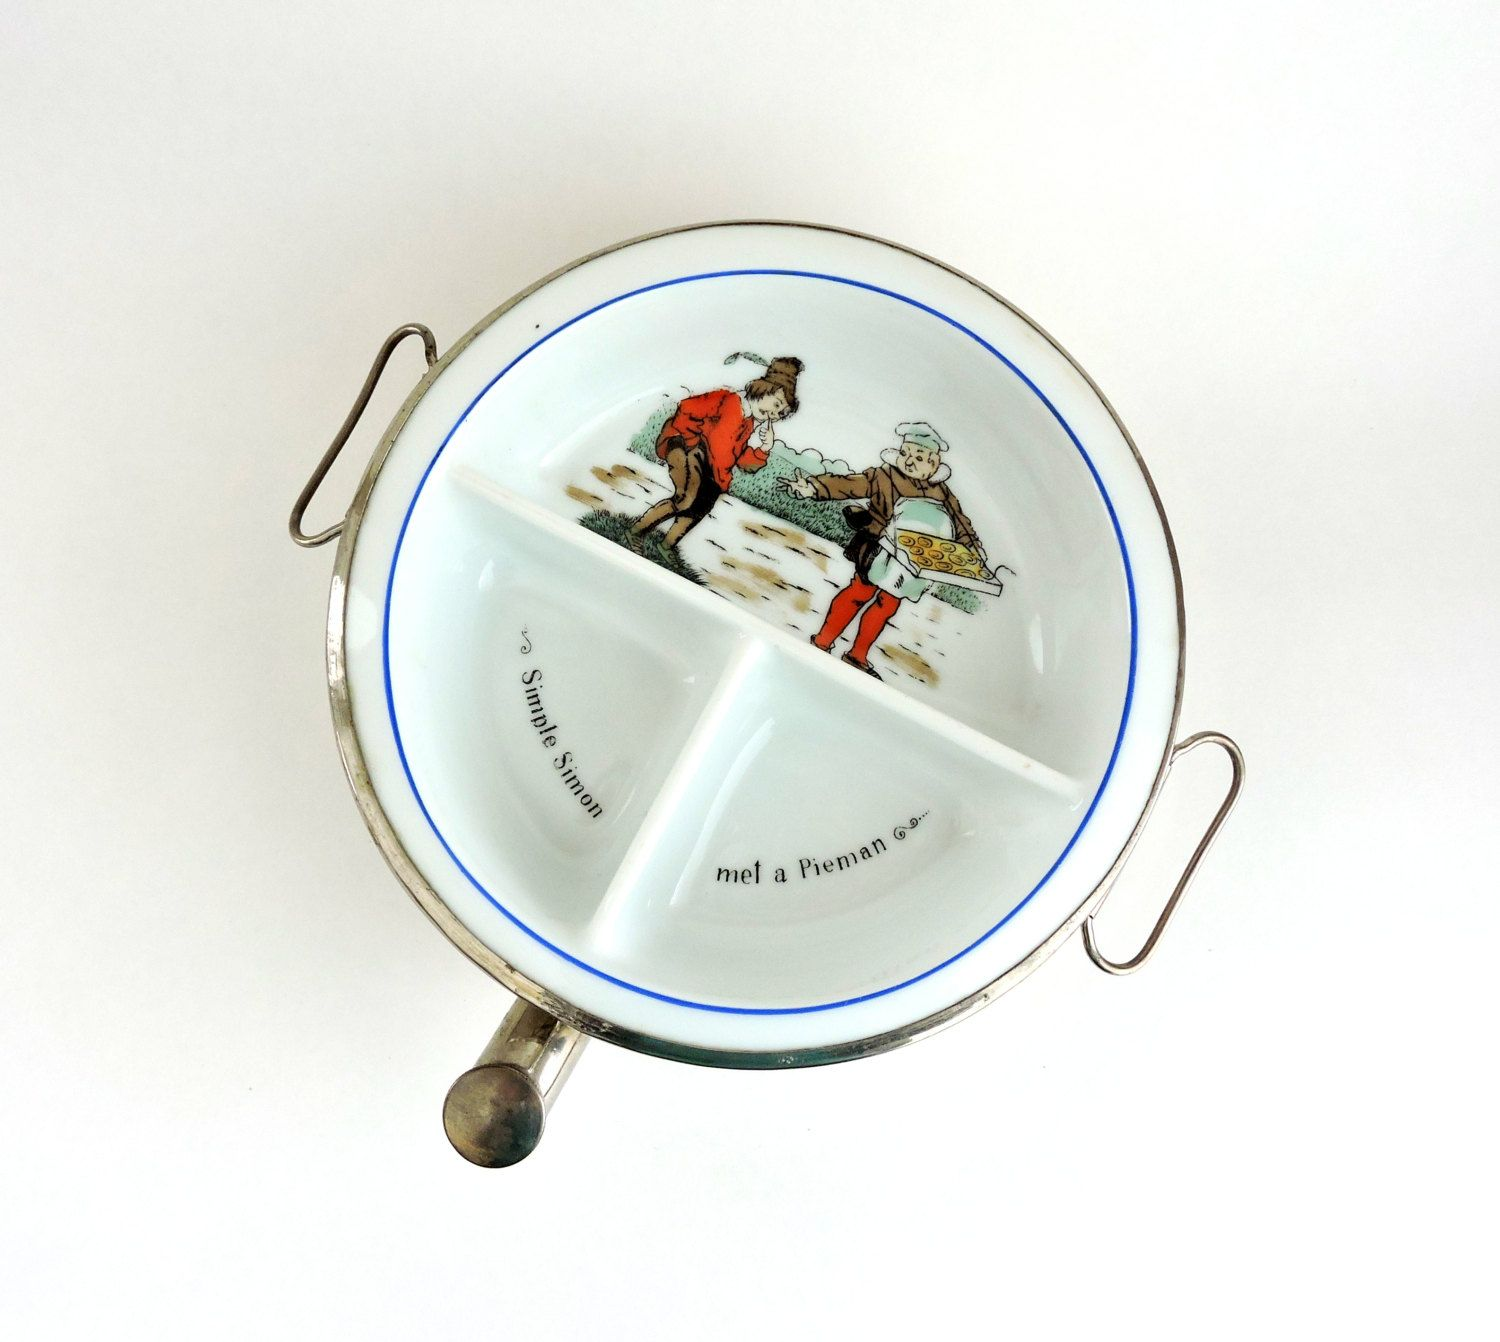 Antiques Vintage Excello Baby Food Dish Warmer Metal Porcelain Nursery Rhyme 3 Section